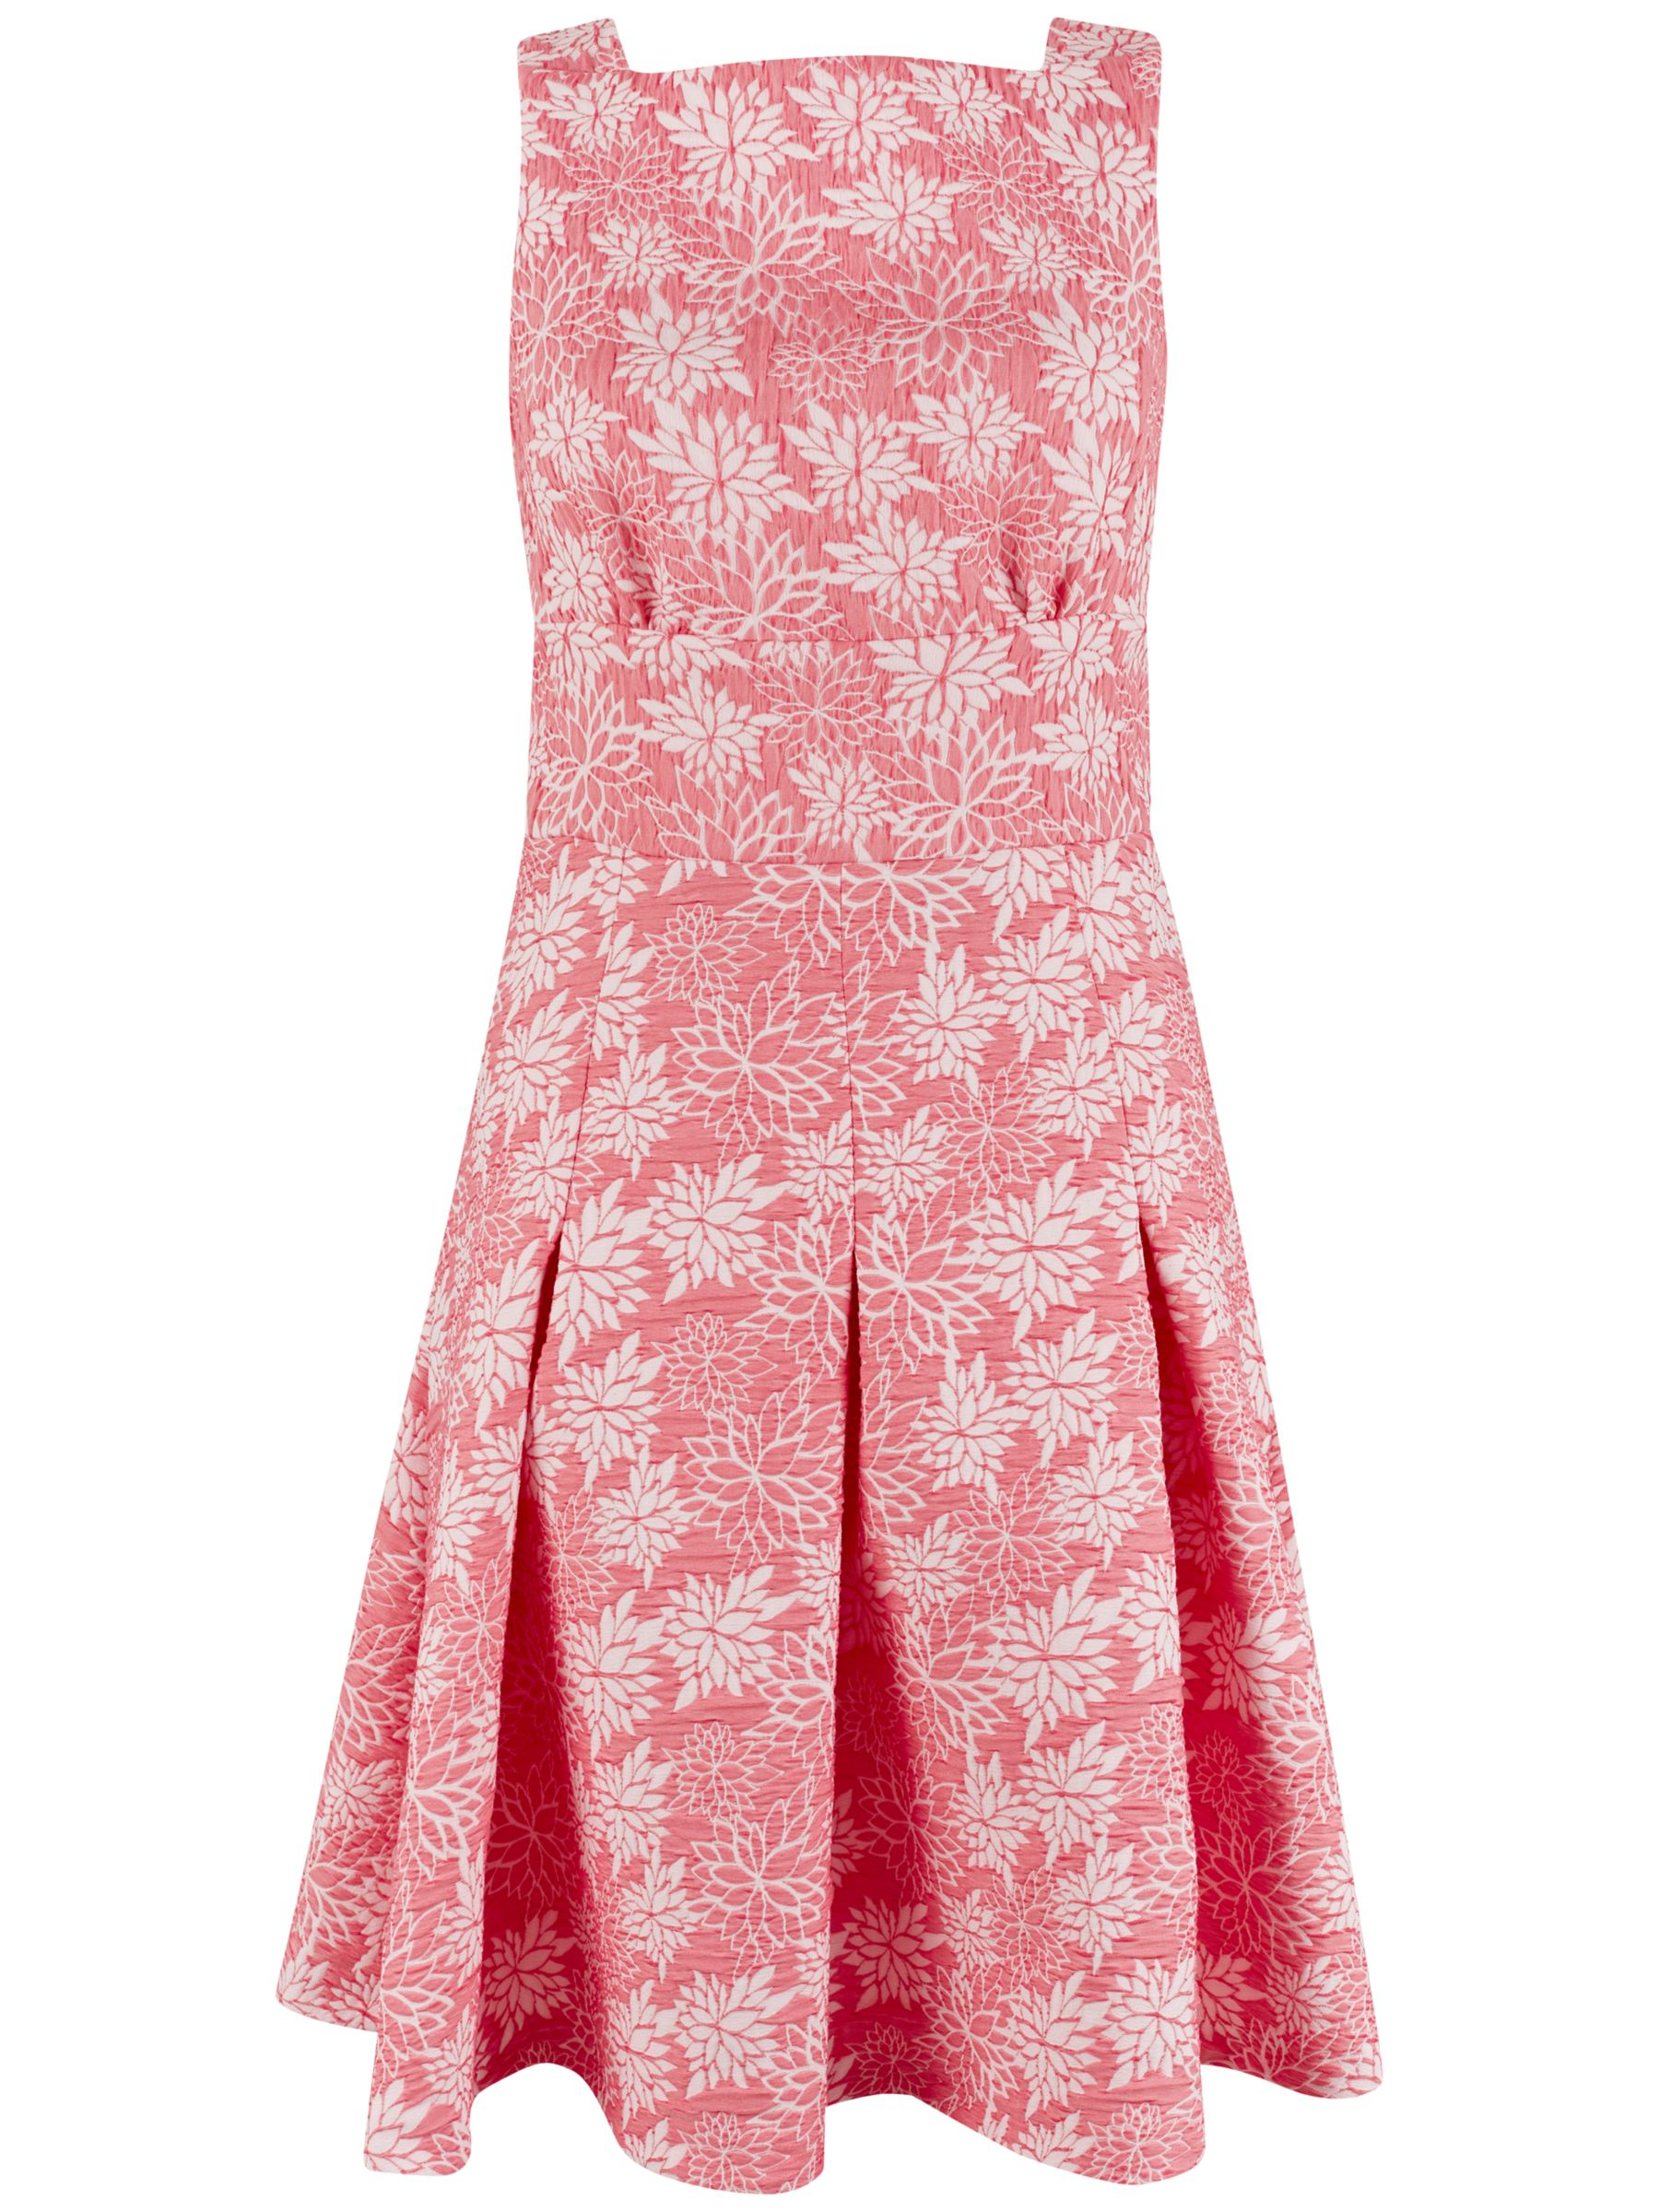 Closet Closet Sleeveless Floral Dress, Pink